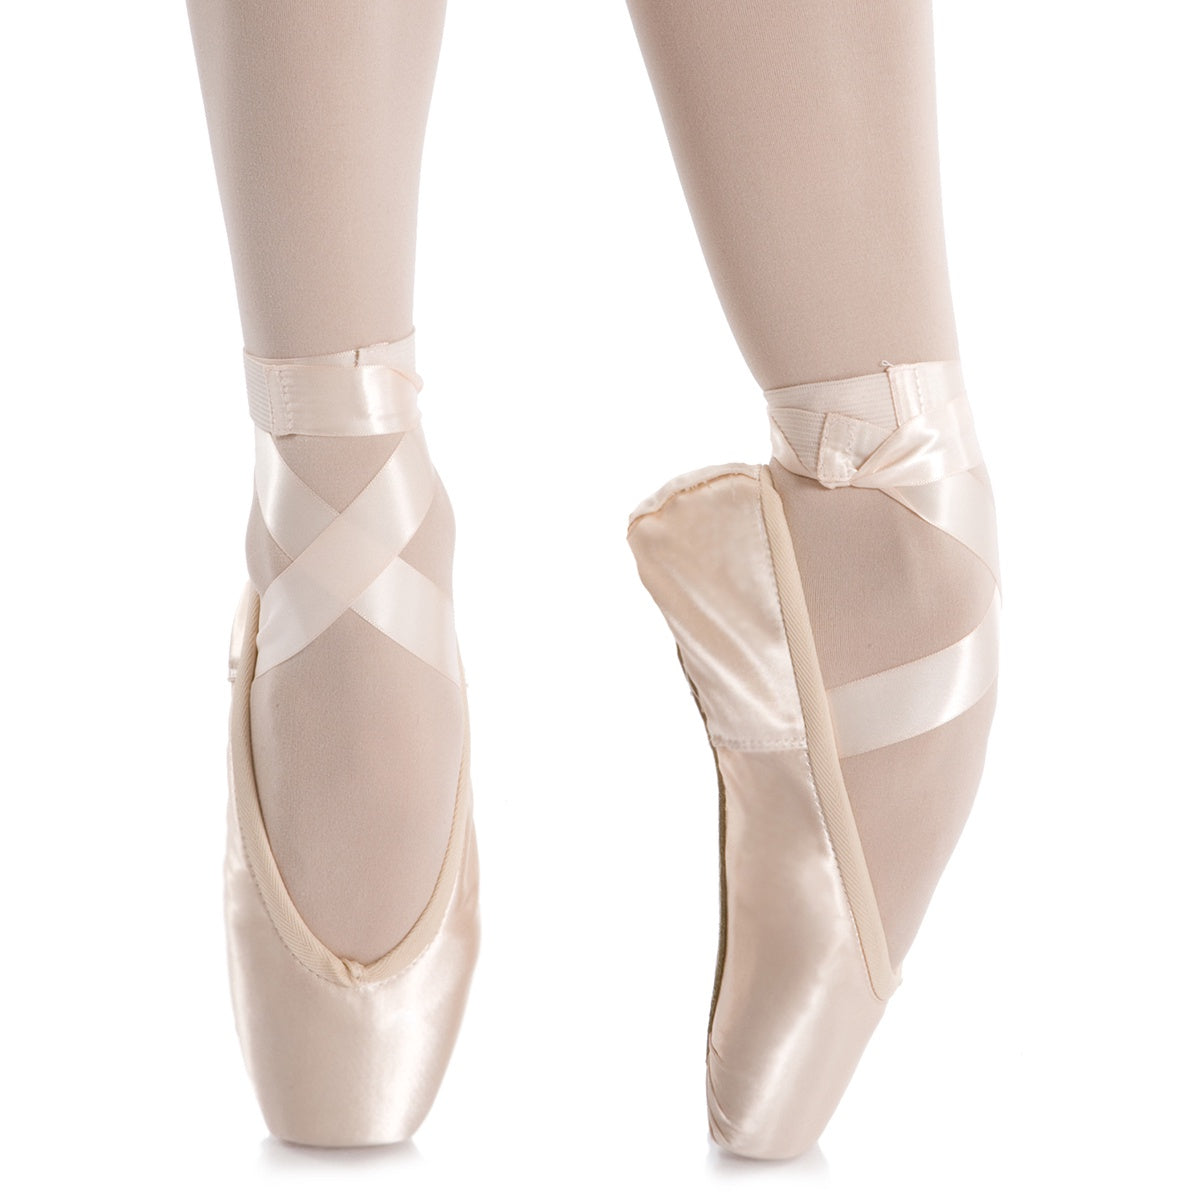 Pointe Shoe Grishko Medium Shank G2007M